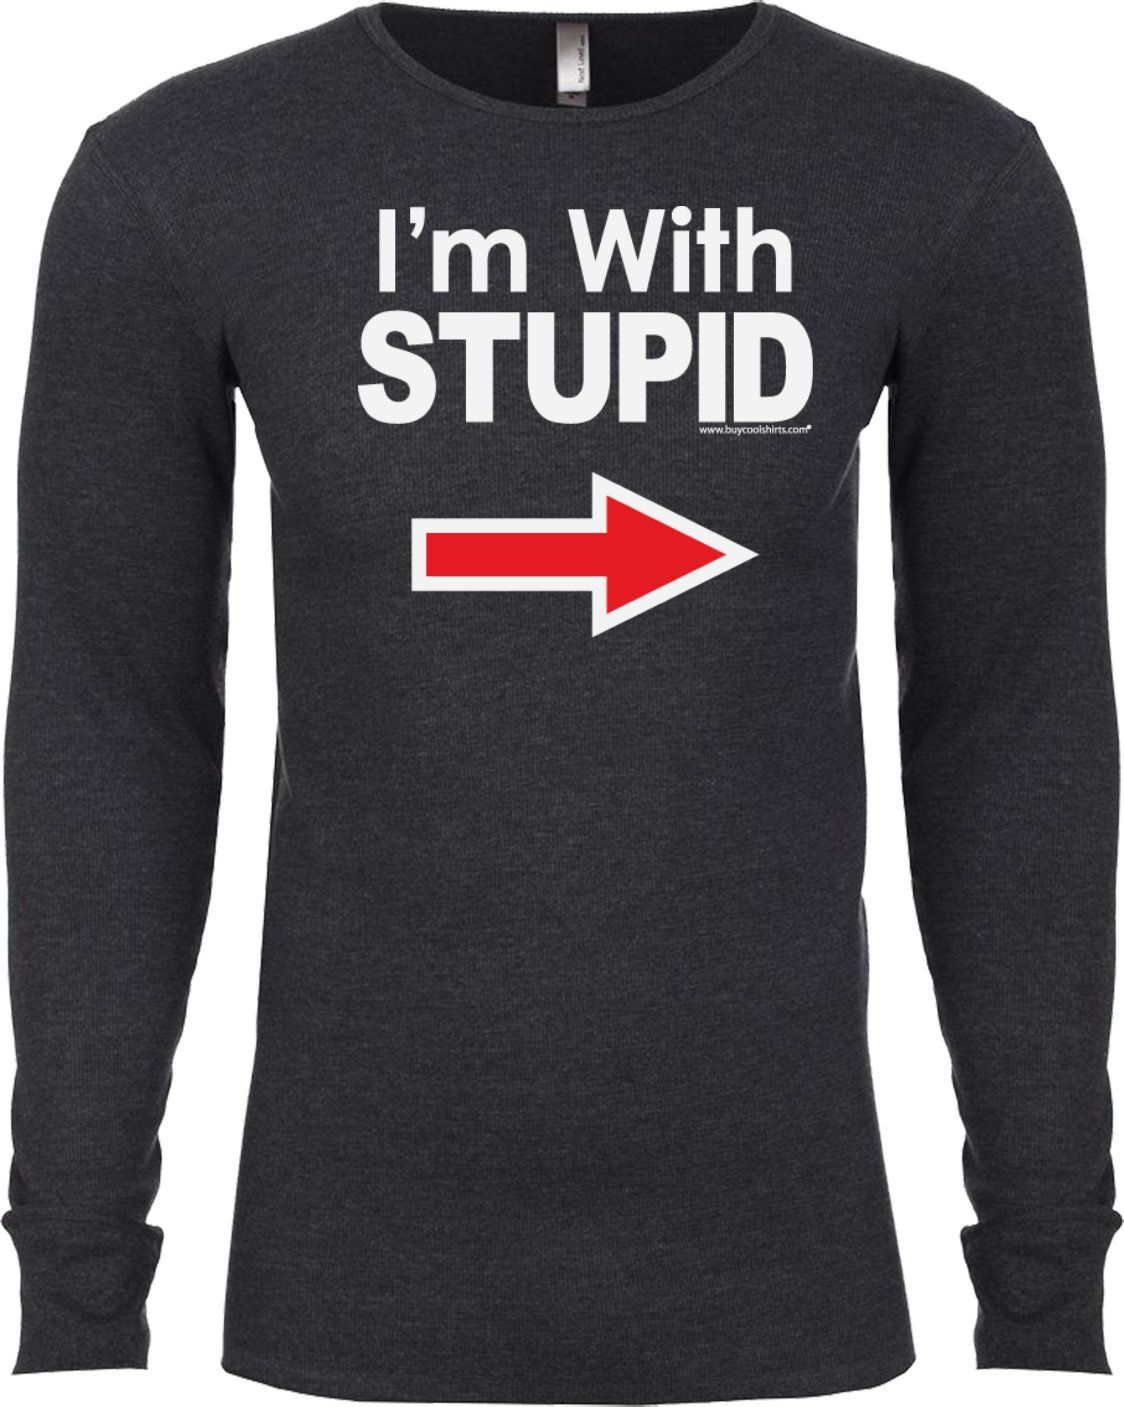 958e77d0 I'm With Stupid T-shirt White Print Long Sleeve Thermal | Products ...